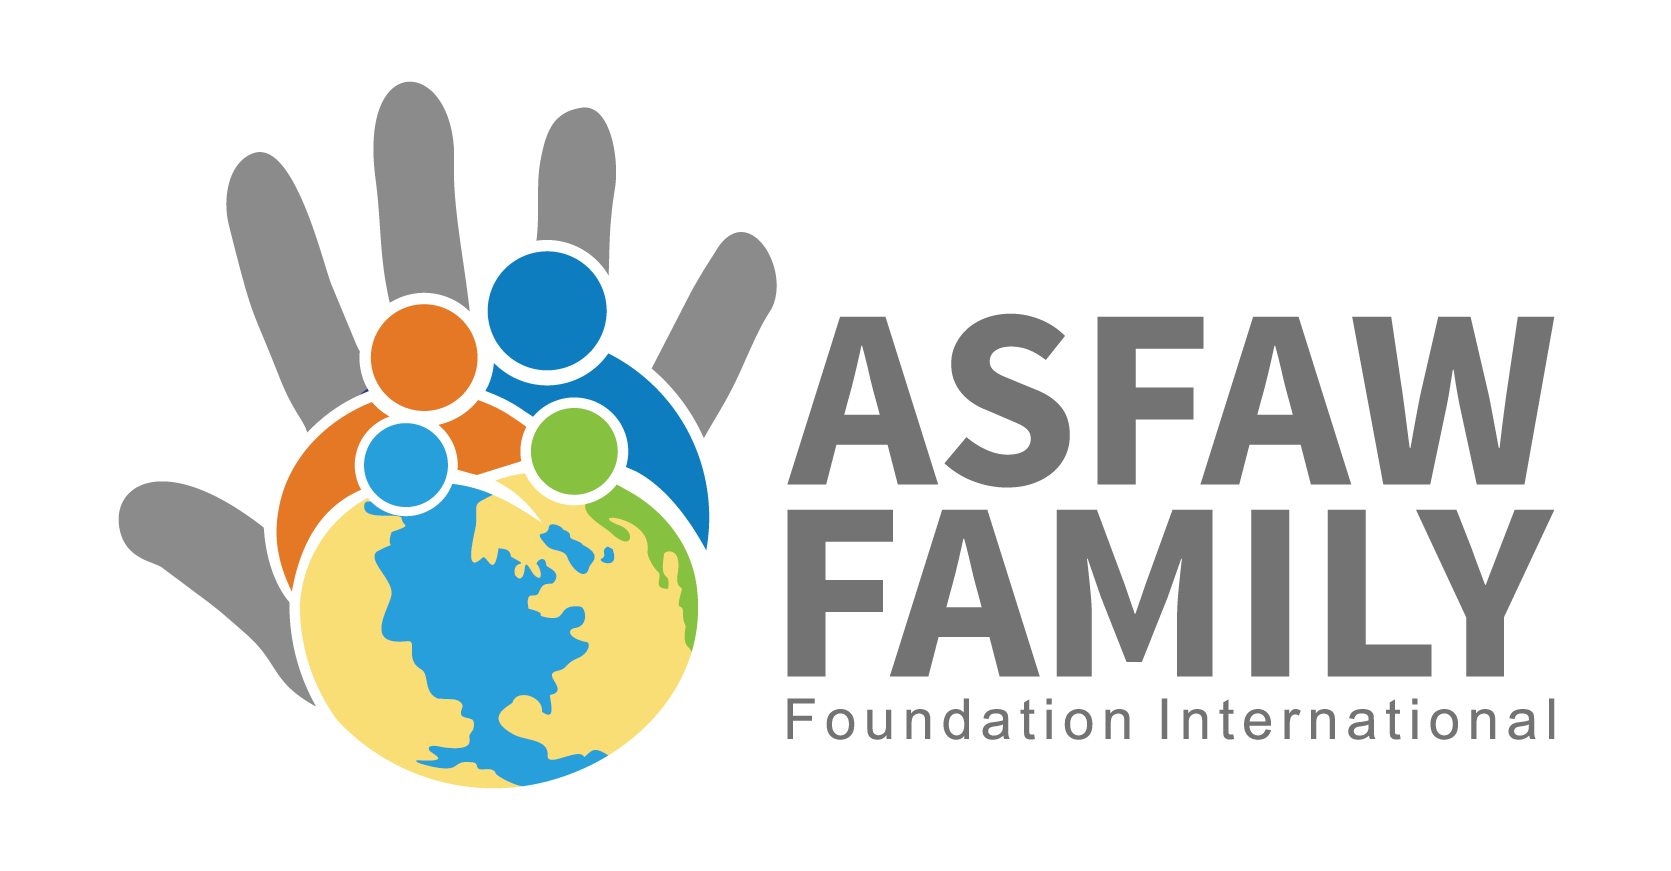 Asfaw Family Foundation International